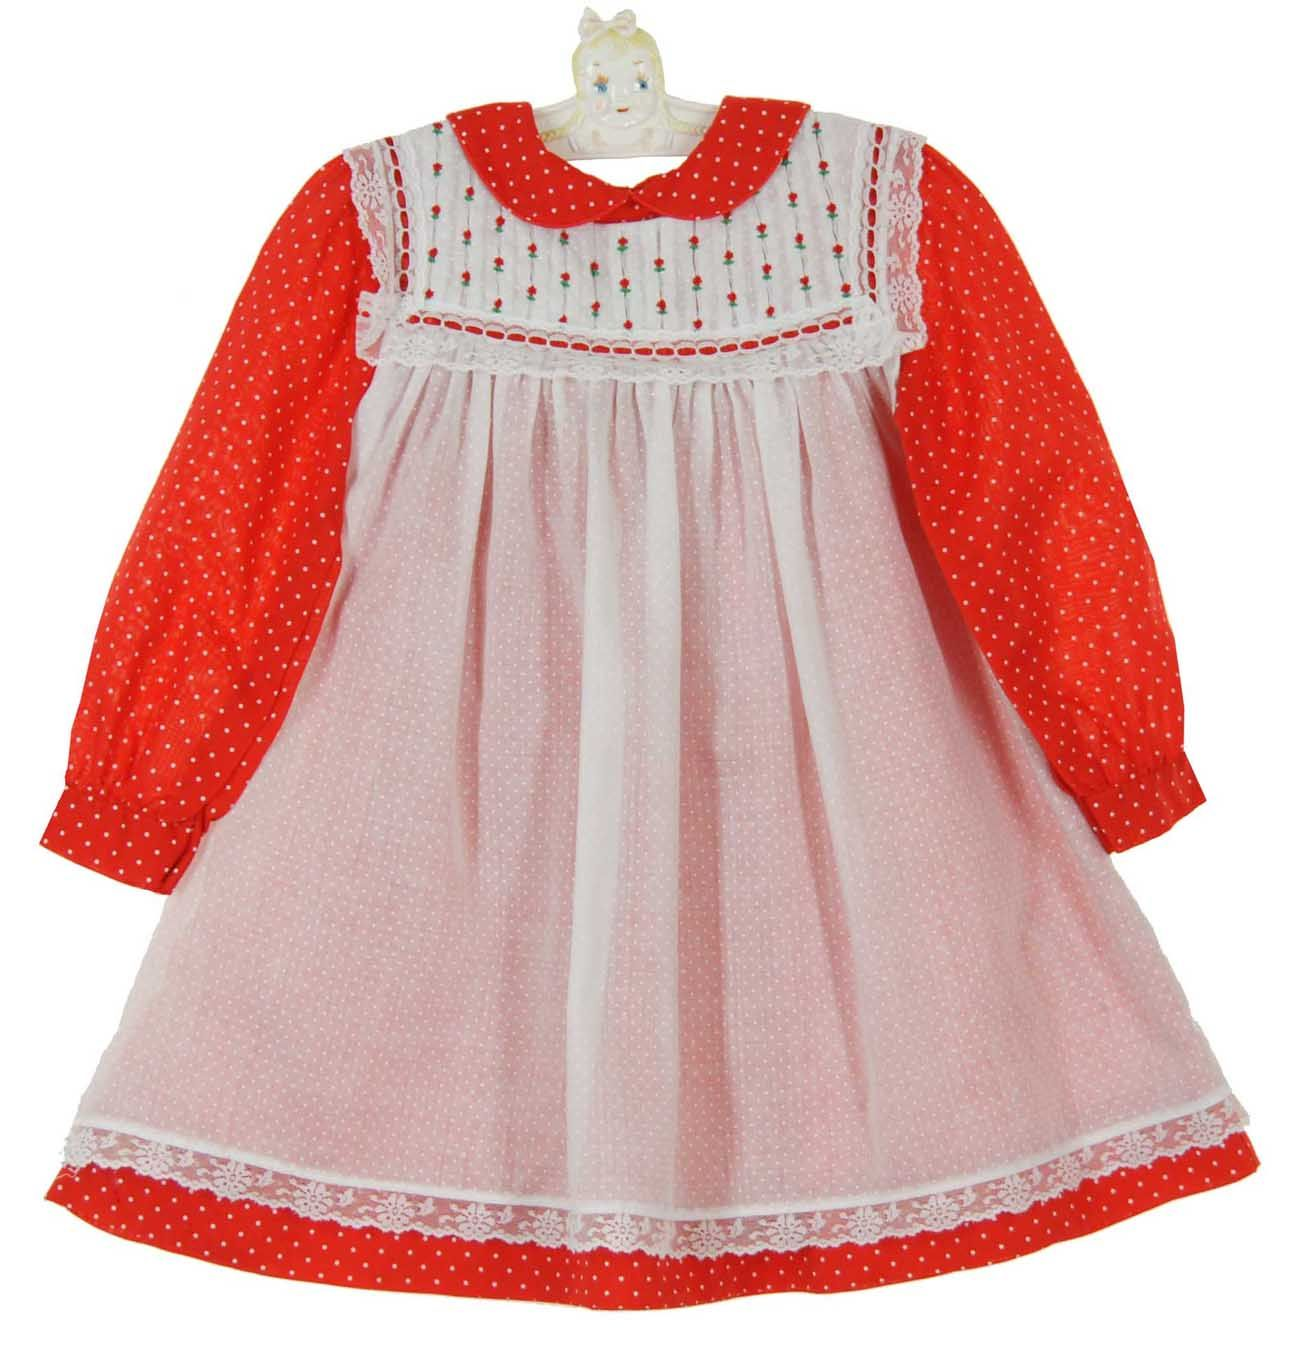 554b3b8f4a52 Polly Flinders Red Dotted Dress with White Lace Trimmed Pinafore $60.00  #PollyFlindersChristmasDress #PollyFlindersPinaforeDress